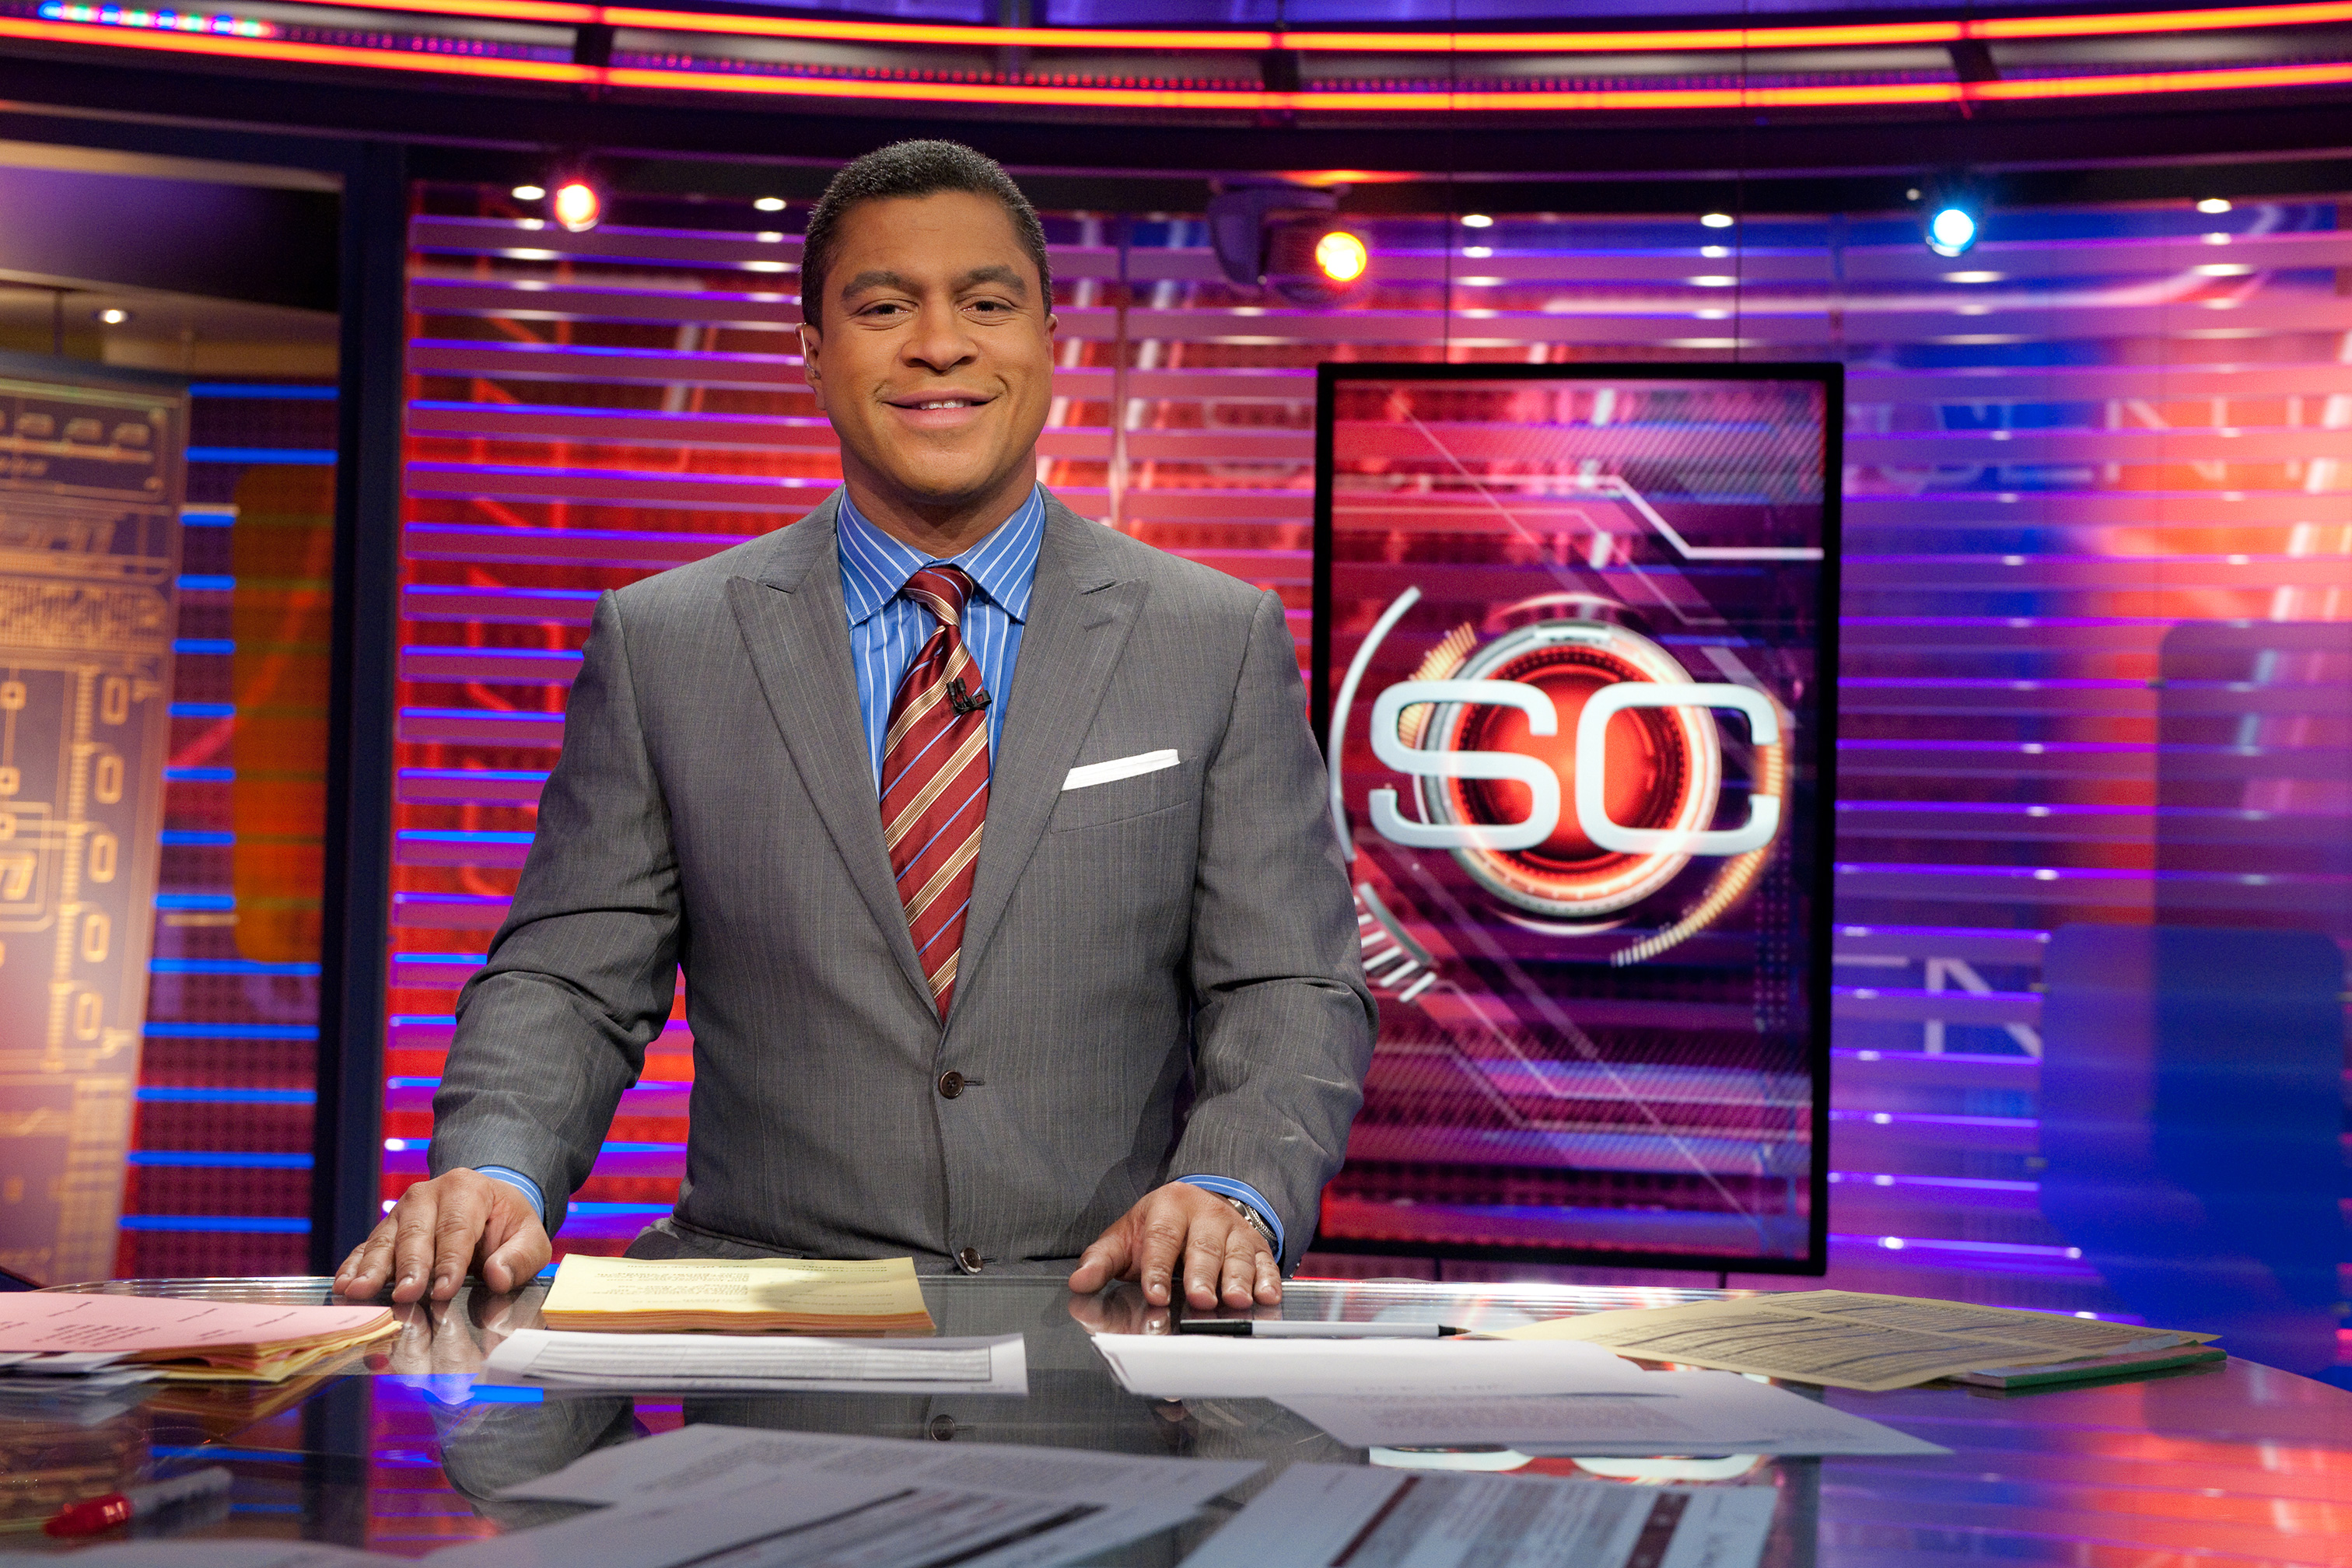 Stan on the set of Sportscenter smiling at the camera.